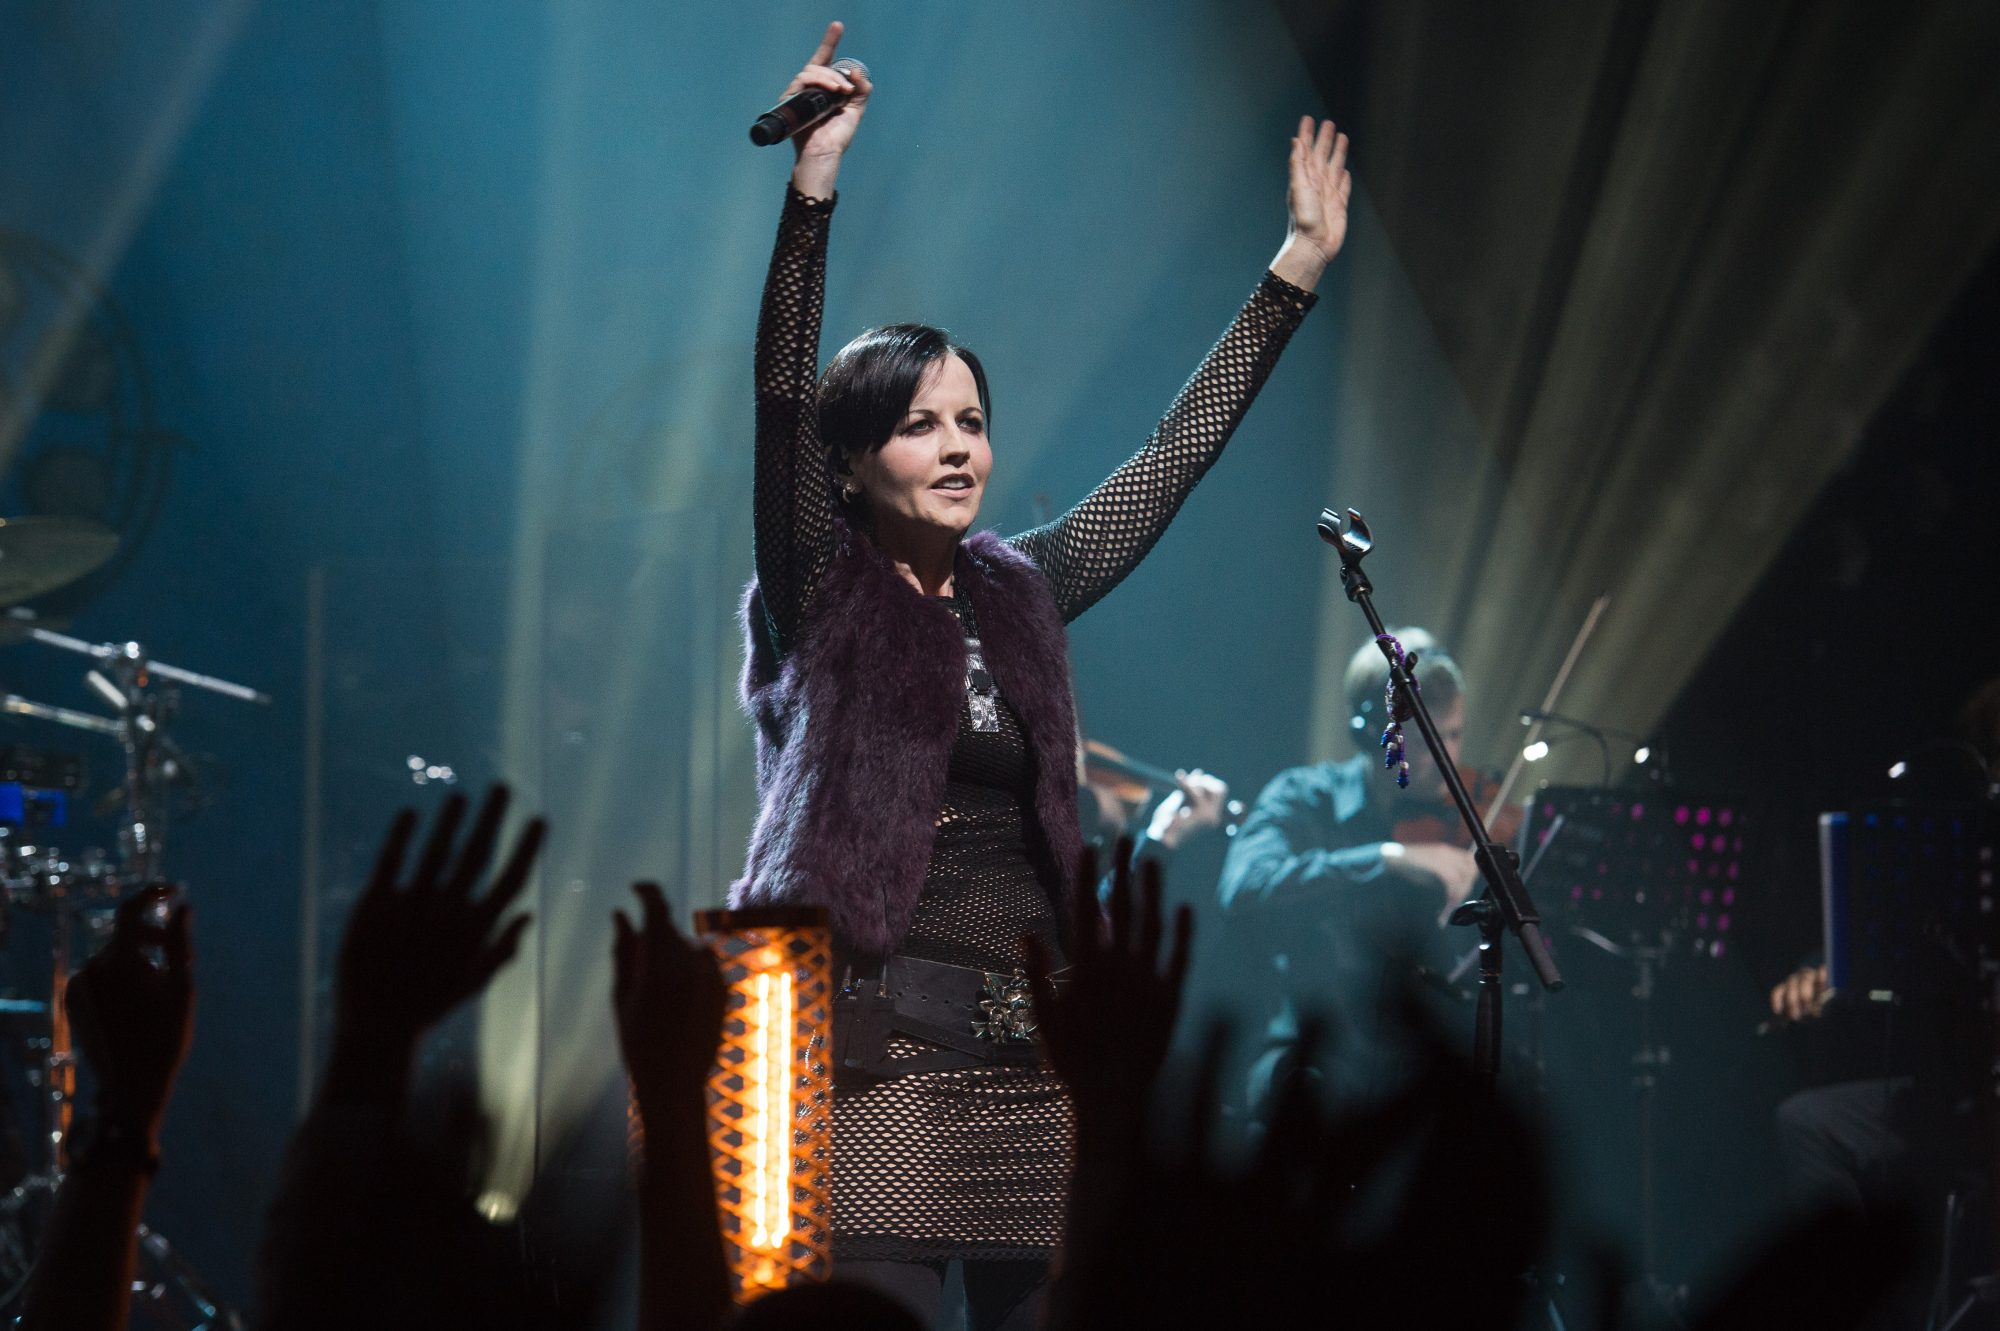 Dolores O'Riordan Was 'Full of Life' While on the Phone with Friends Hours Before Her Death